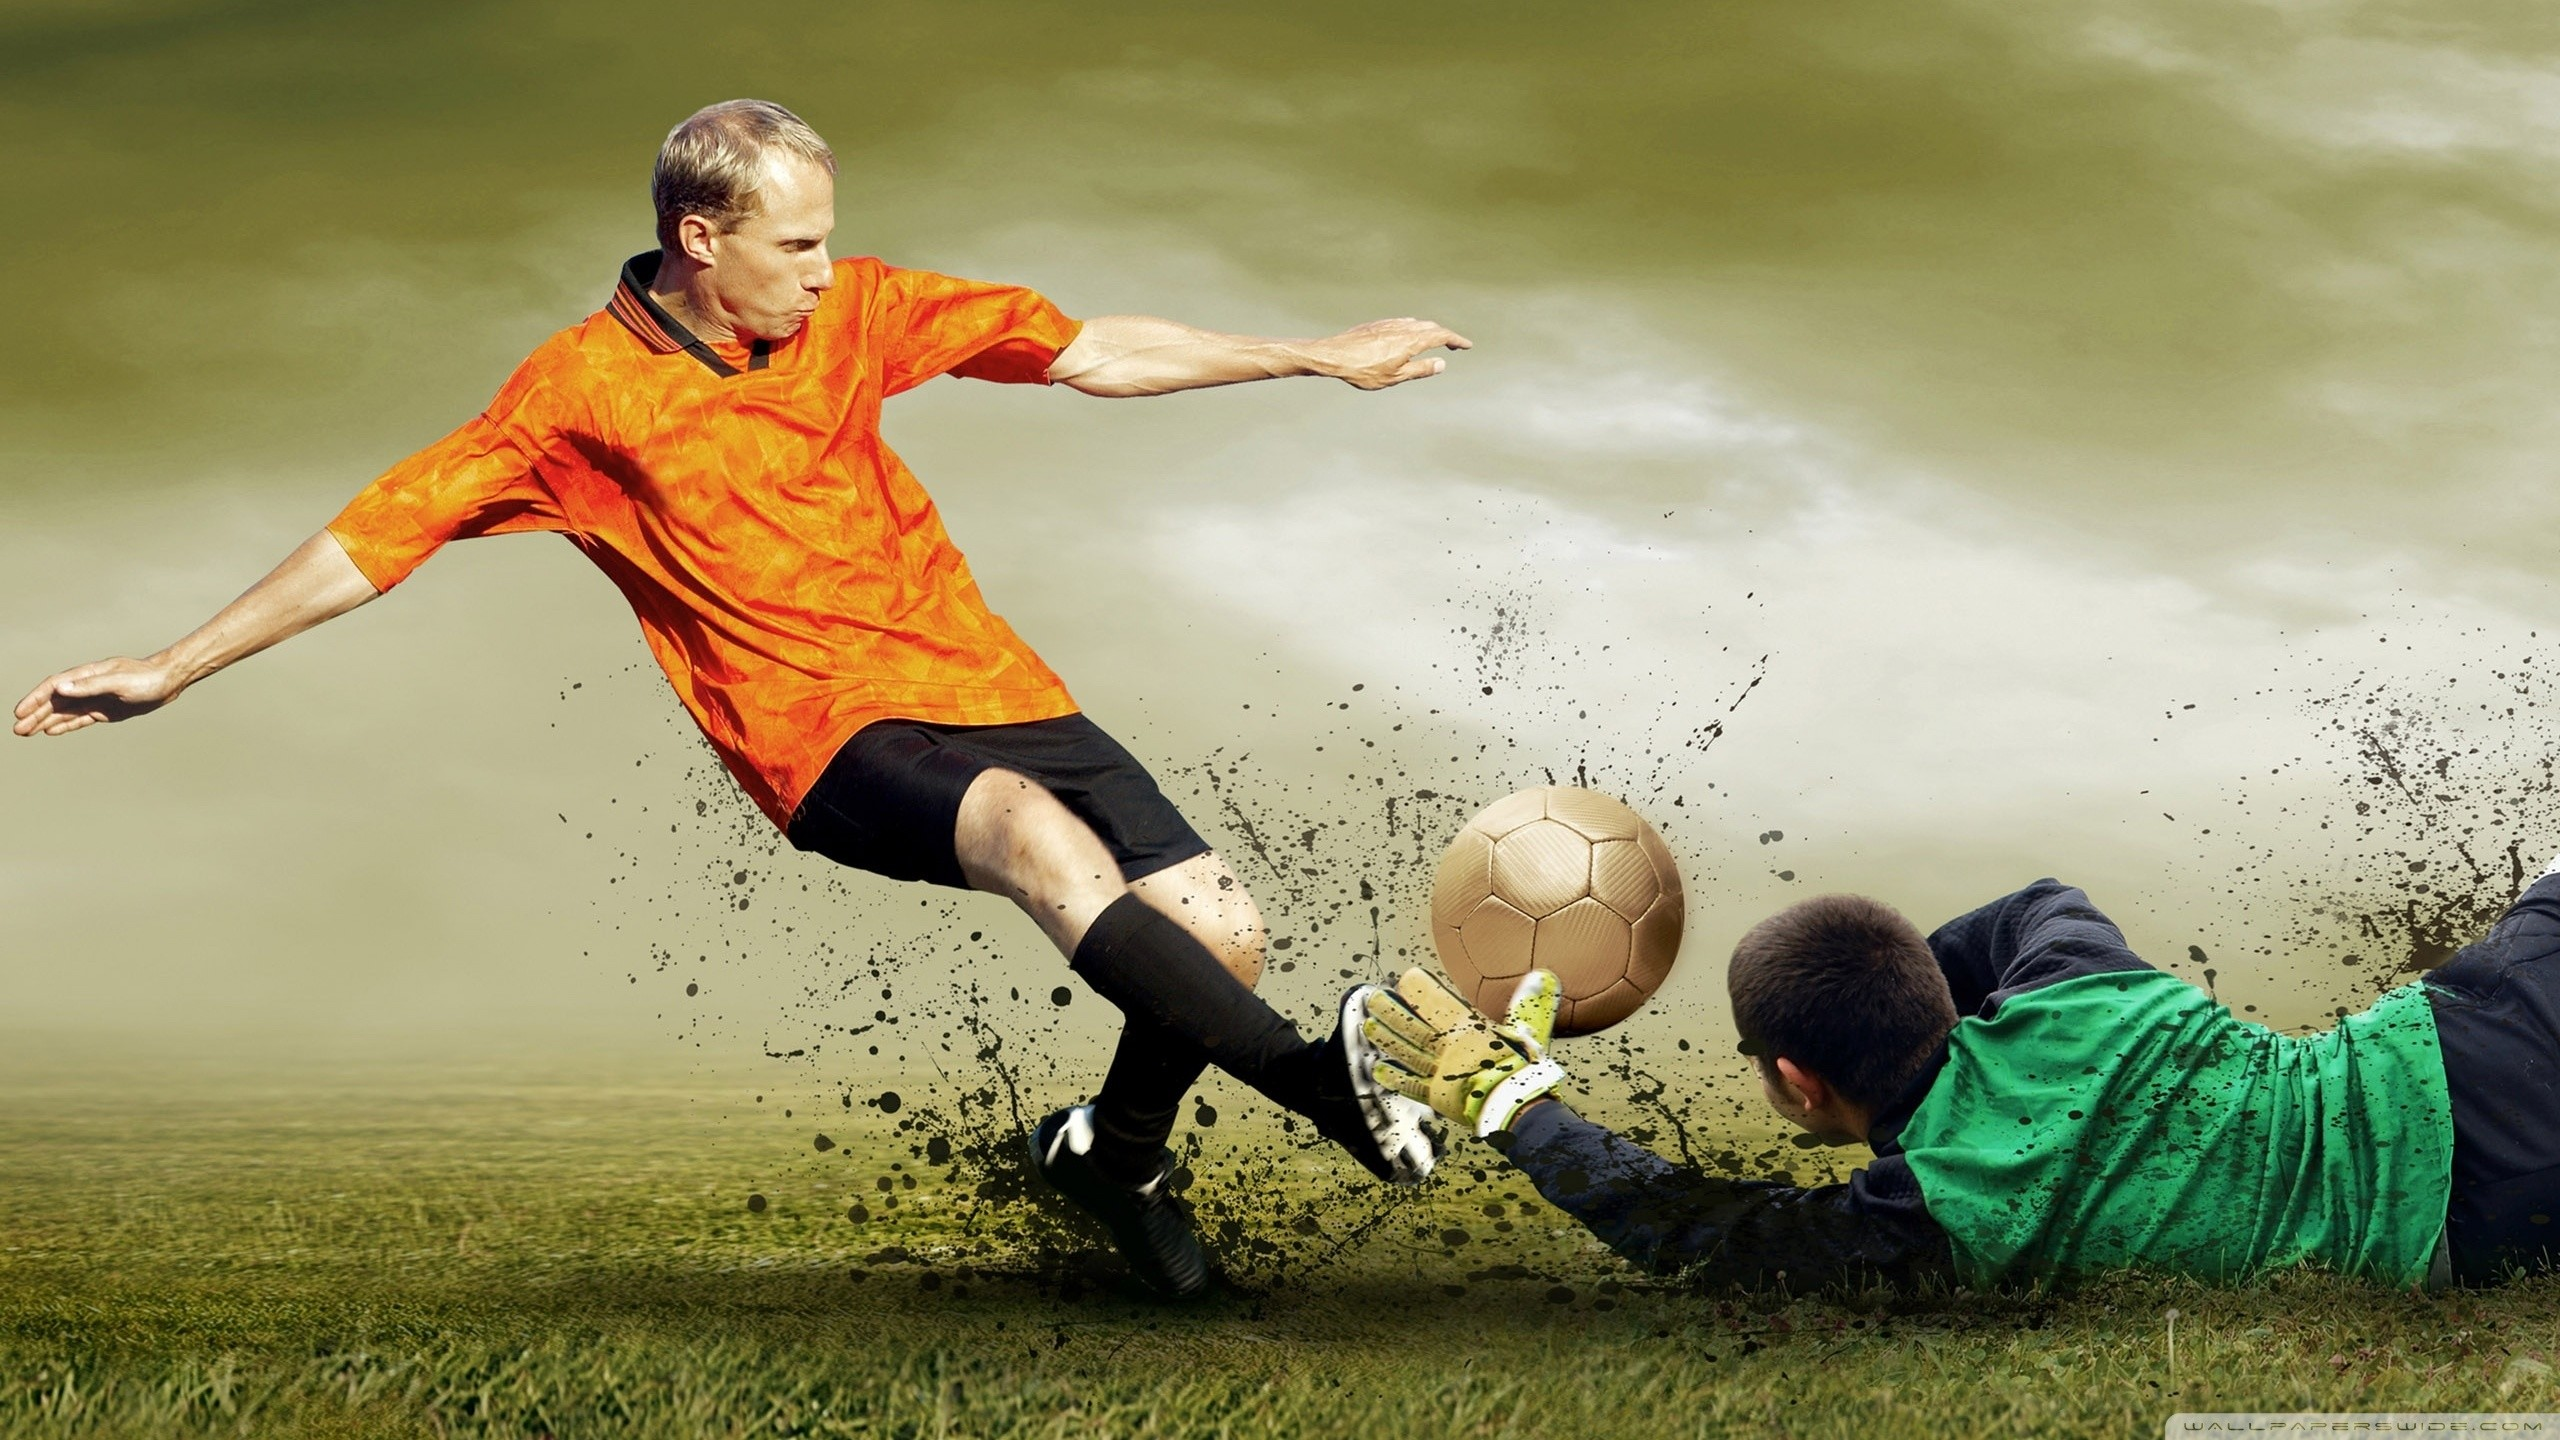 Soccer Wallpapers HD  70  background pictures  2560x1440 Standard